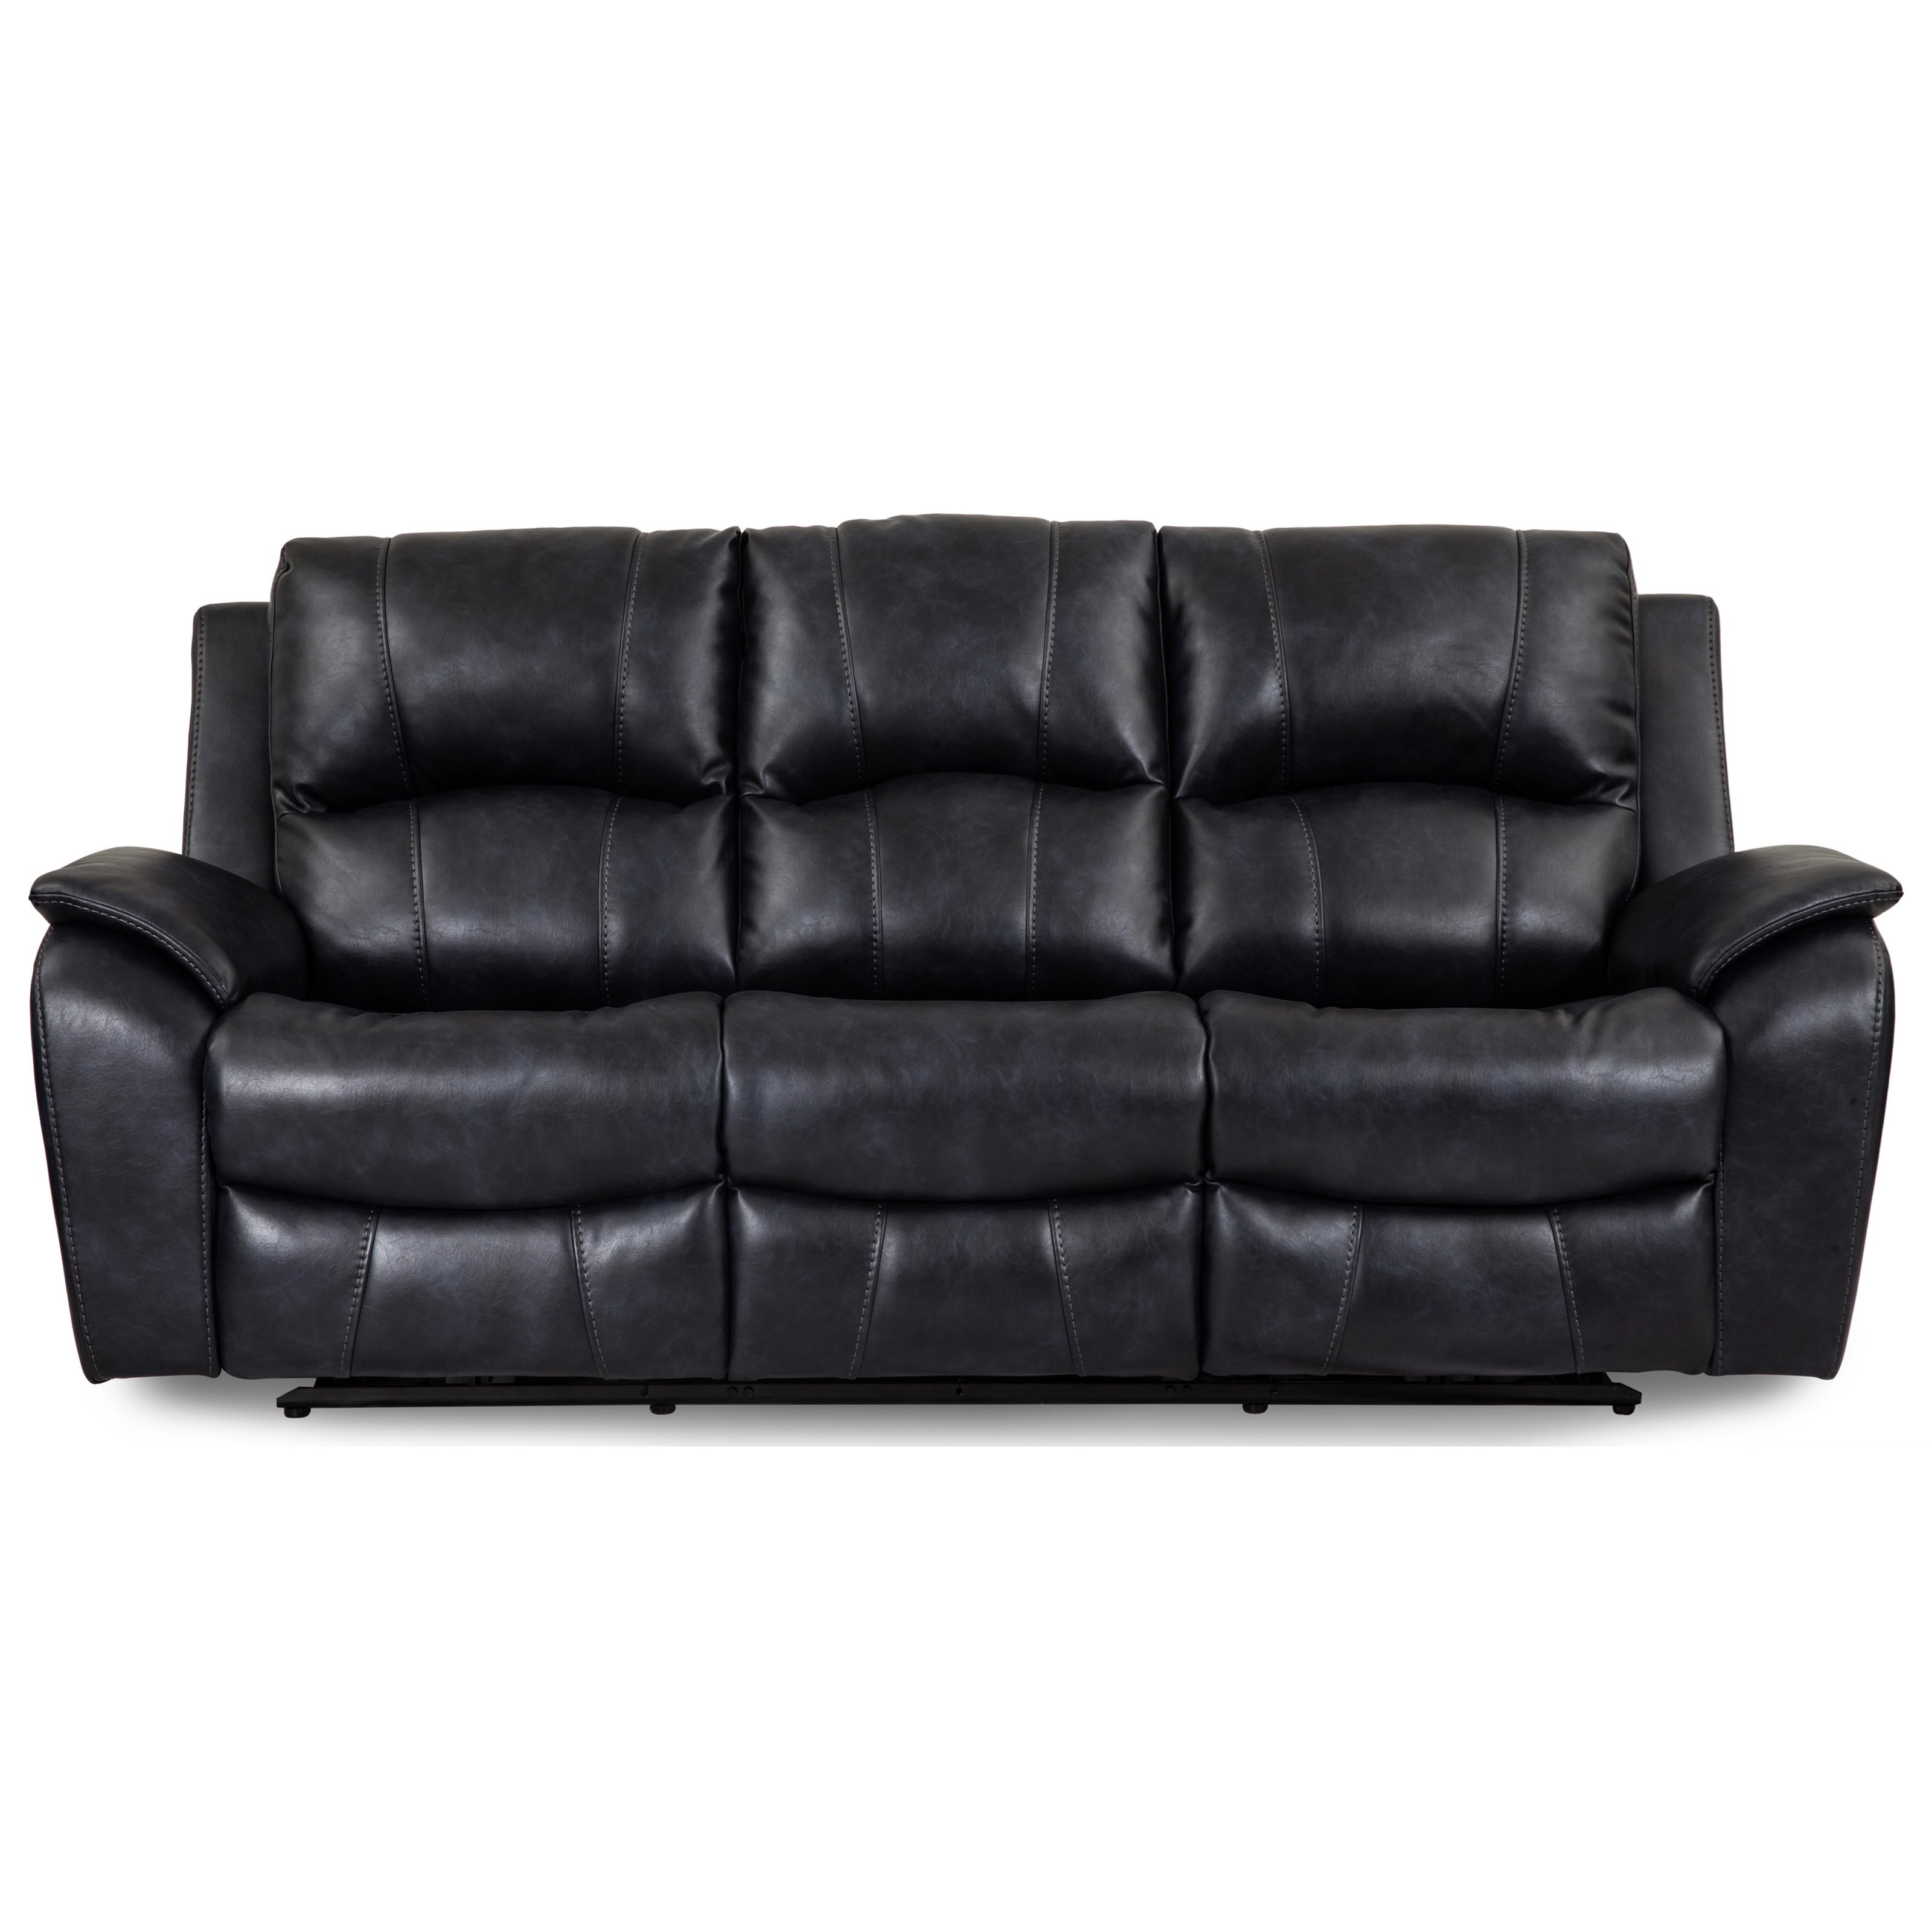 5313 Power Headrest Reclining Sofa by Cheers at Lagniappe Home Store